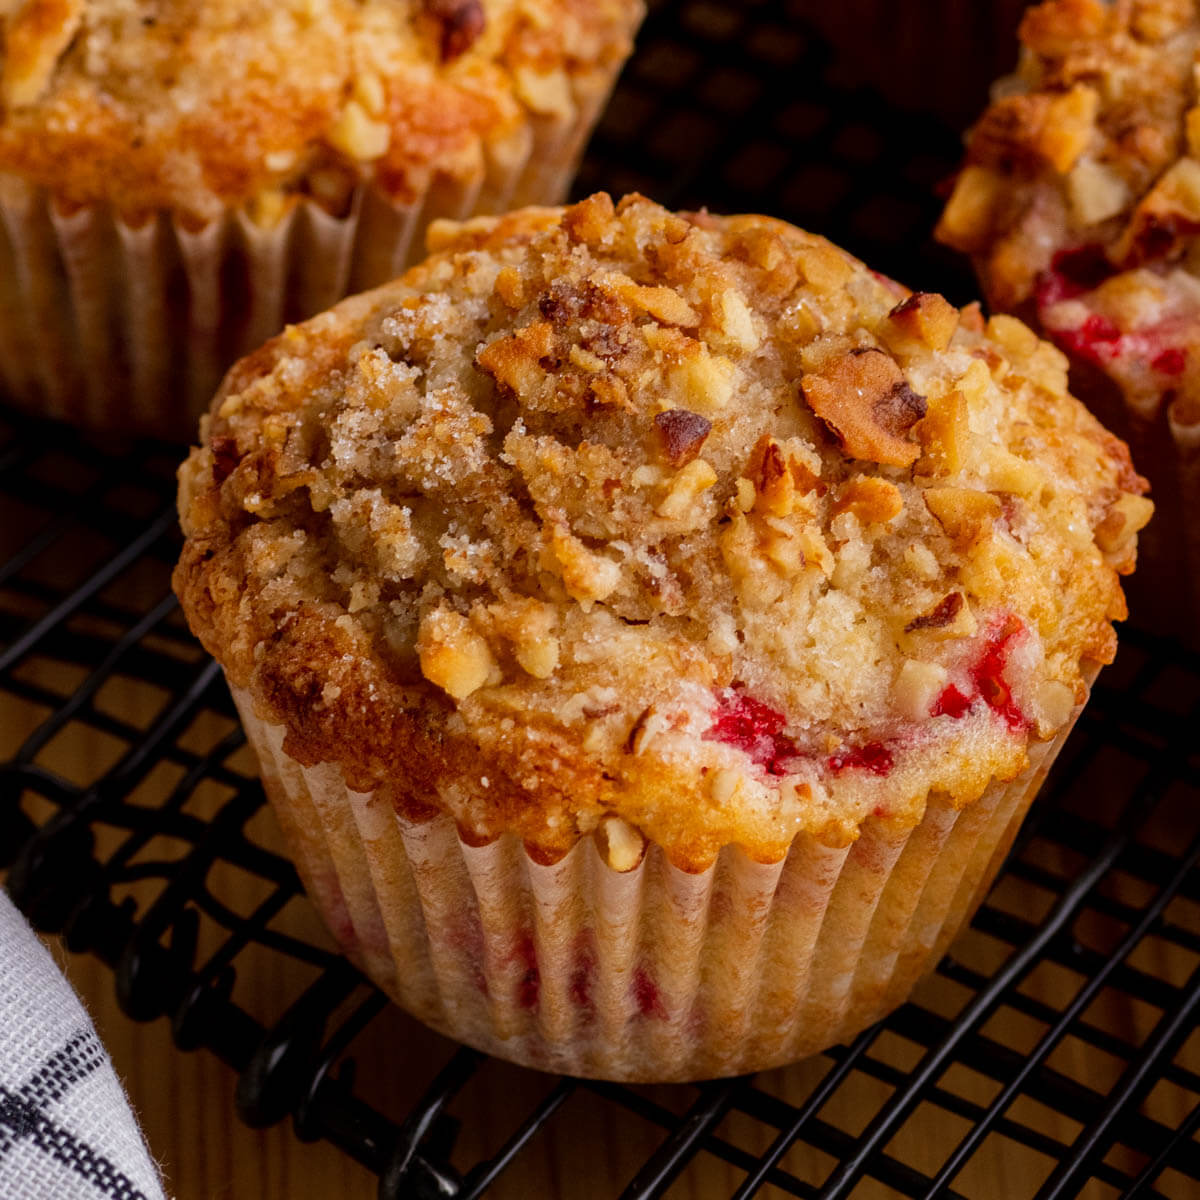 A golden baked strawberry rhubarb muffin topped with streusel.